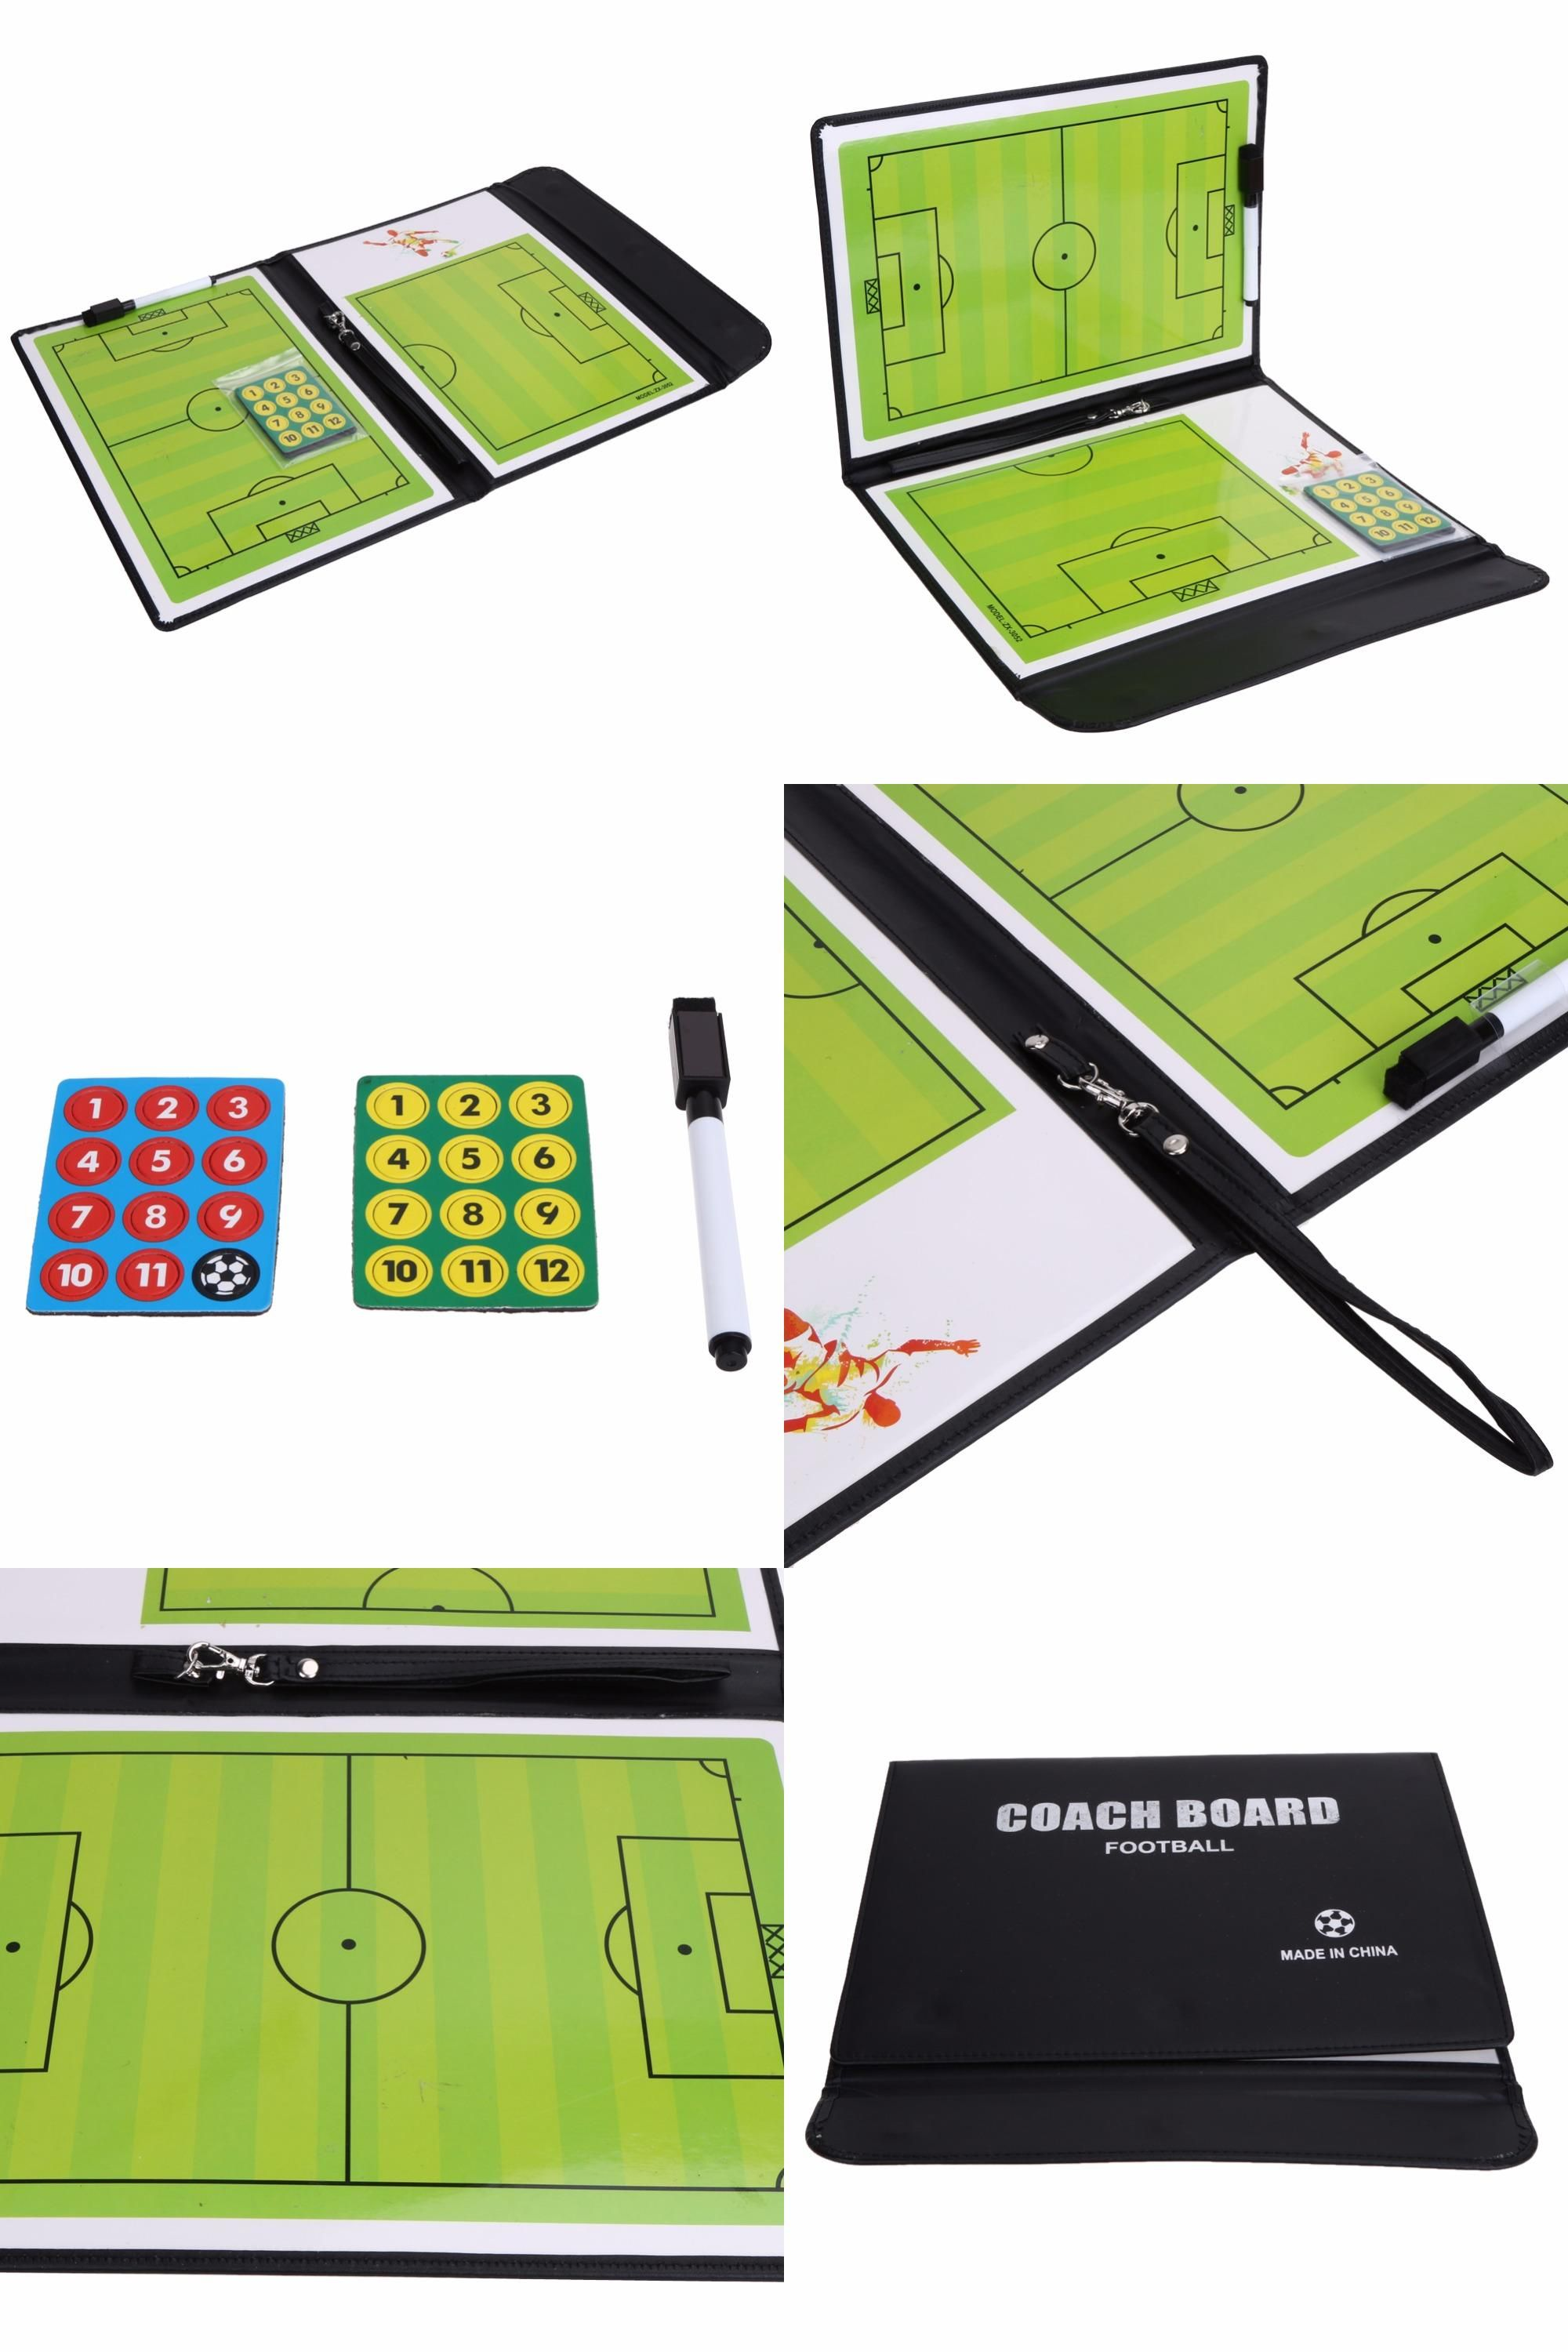 Visit To Buy Folding Football Tactic Board Coaching Board Magnetic Soccer Coach Book Set With Pen Dry Erase Clipboard Soccer Coaching Coach Football Supplies